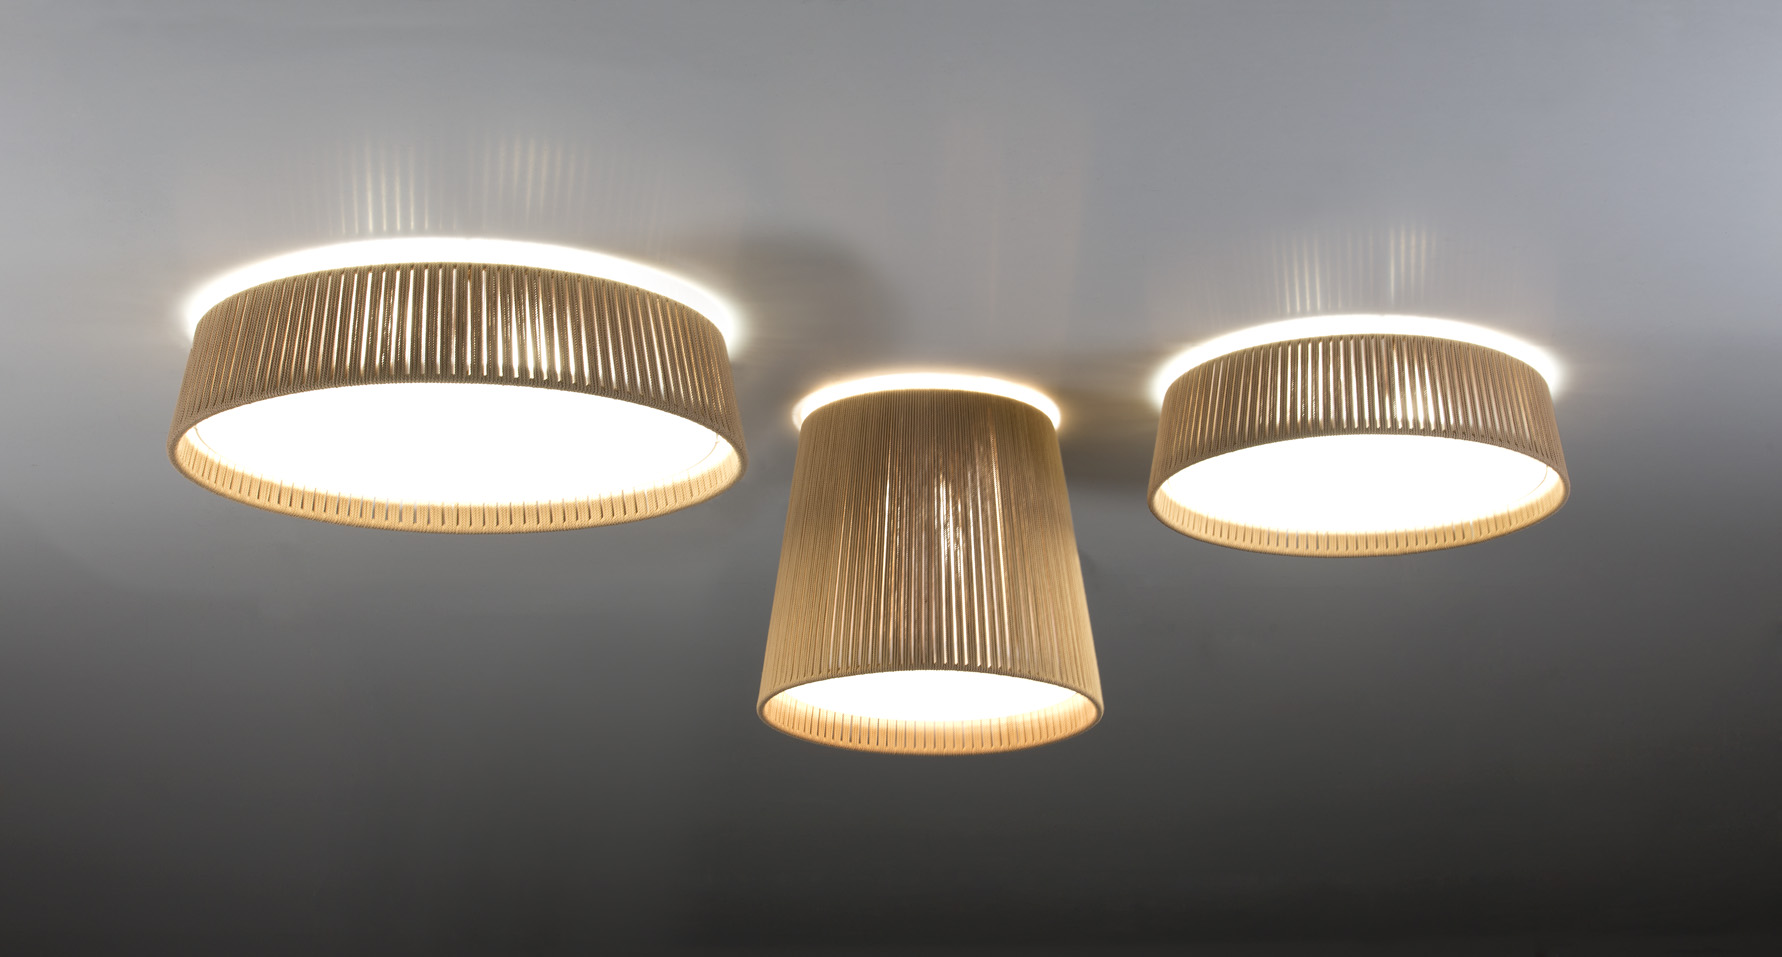 Plafondbeugel Lamp Ceiling Mounted Lighting Lighting Ideas